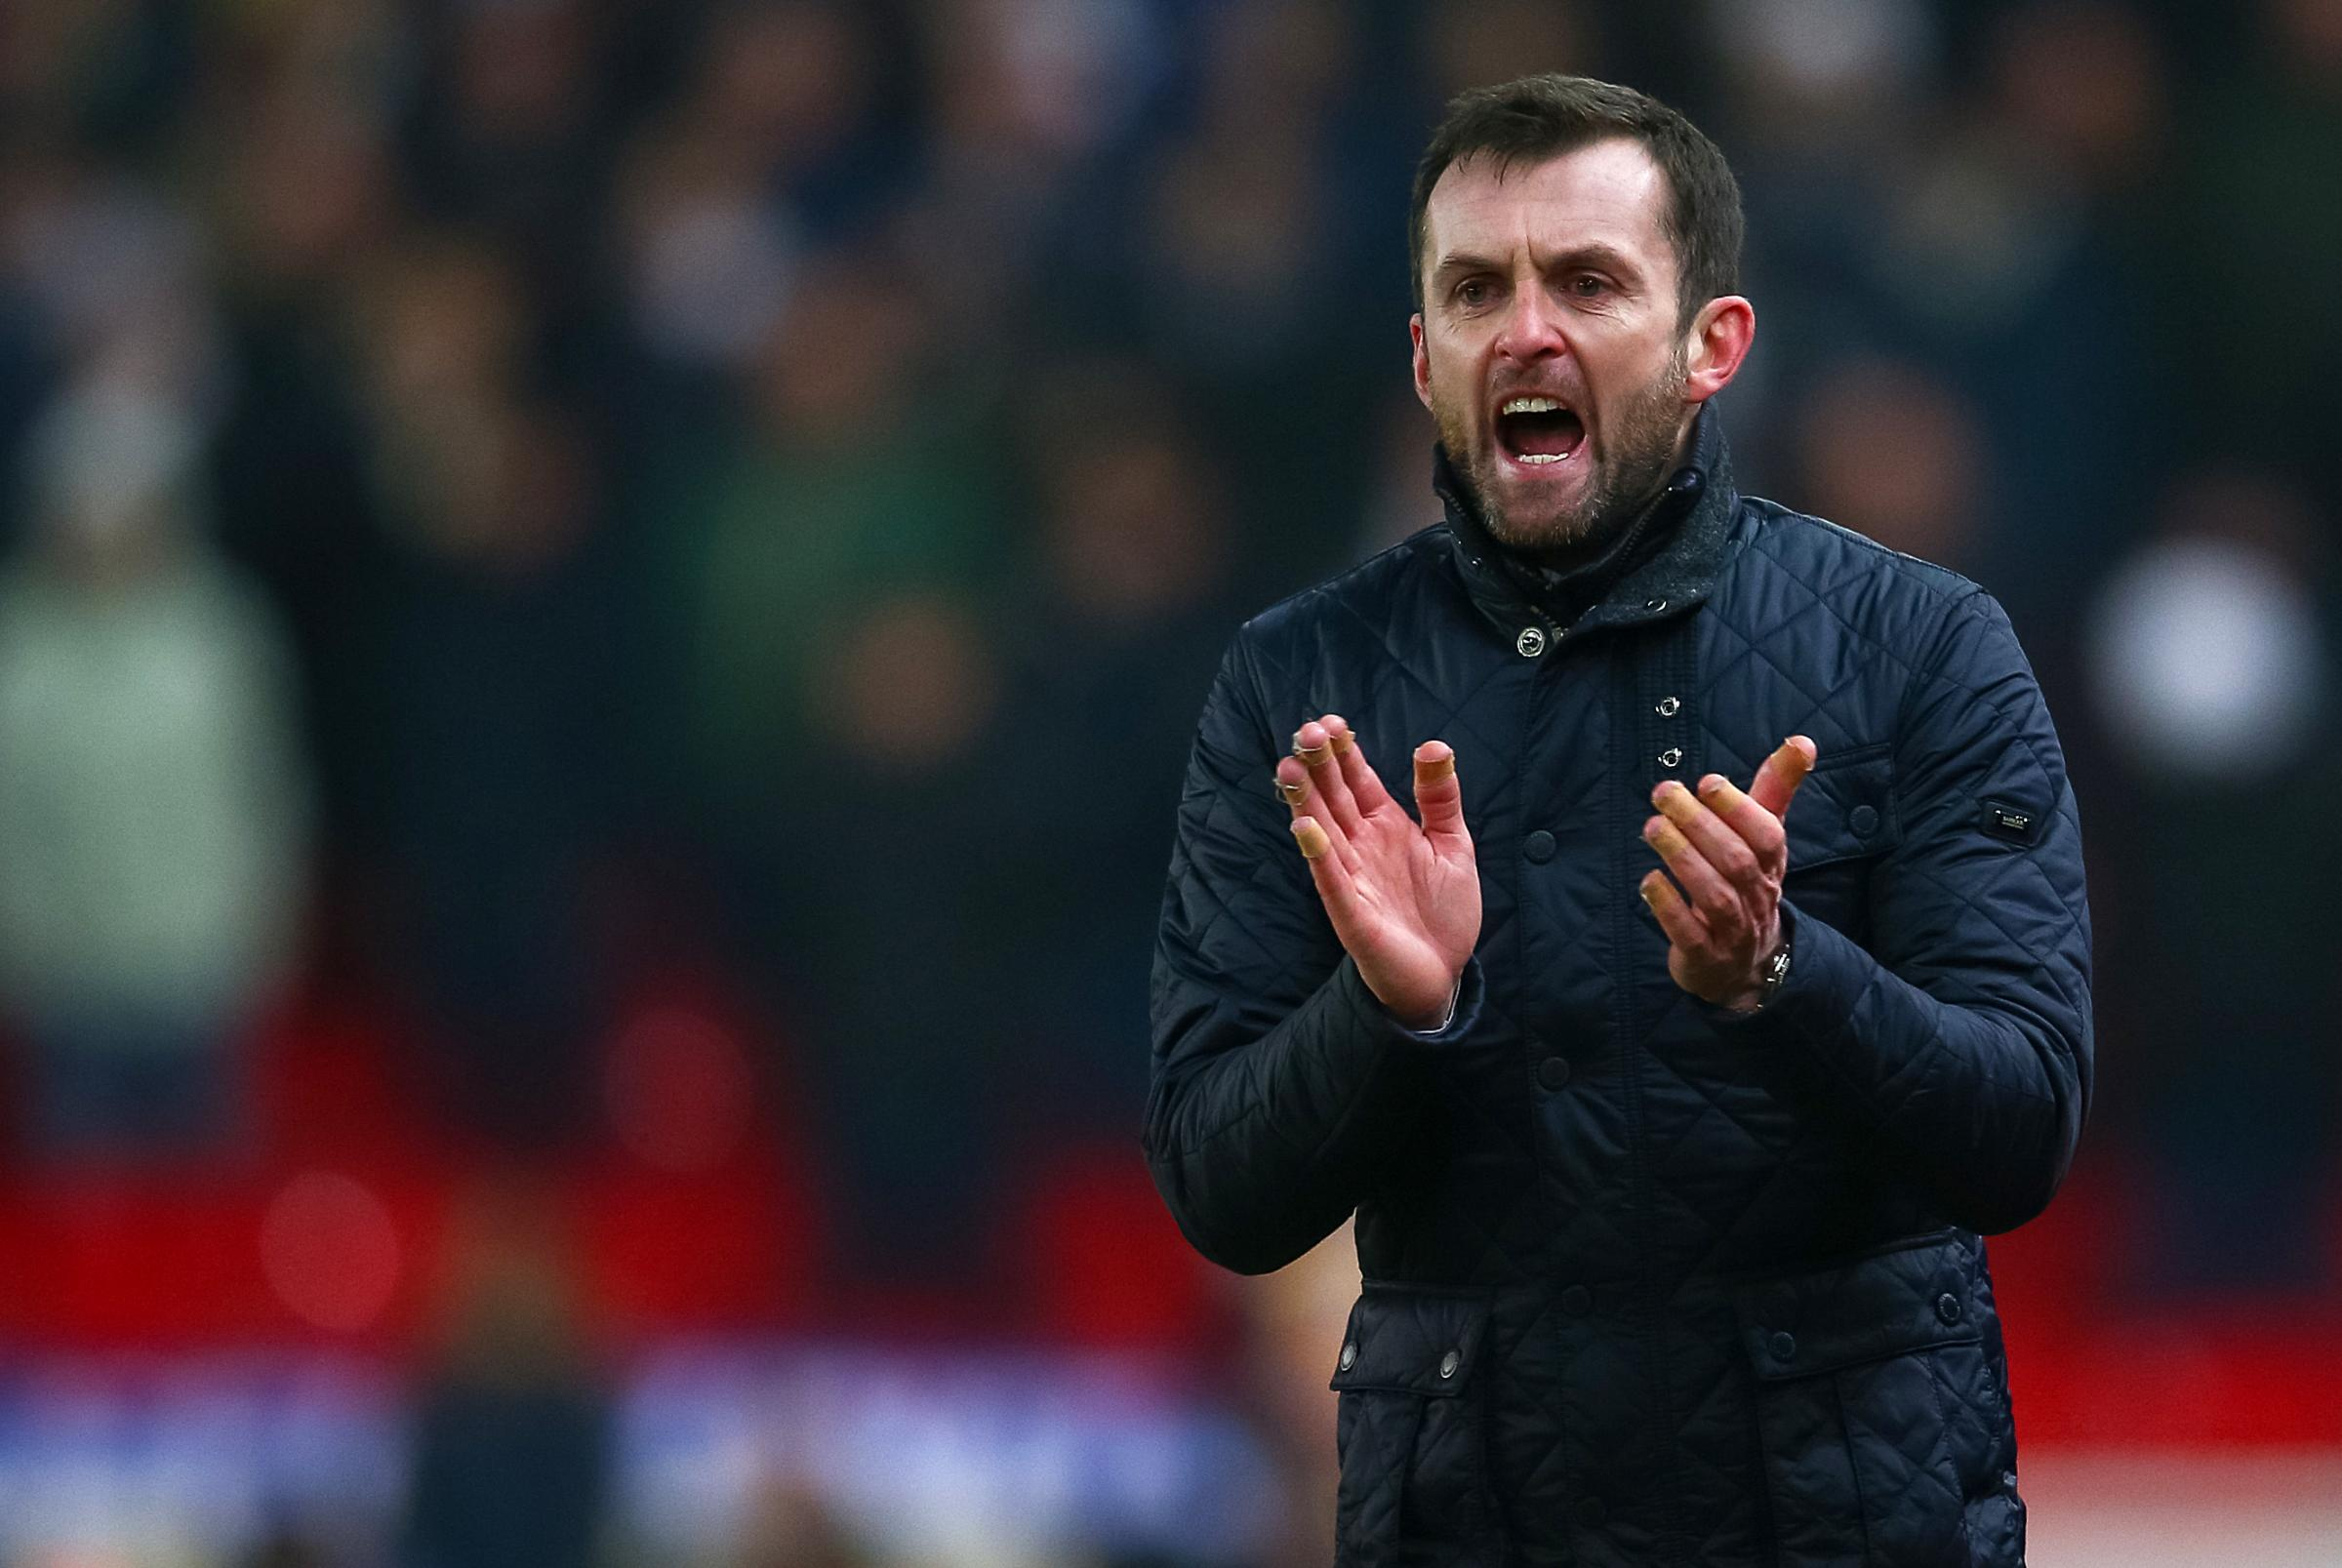 Stoke City manager Nathan Jones